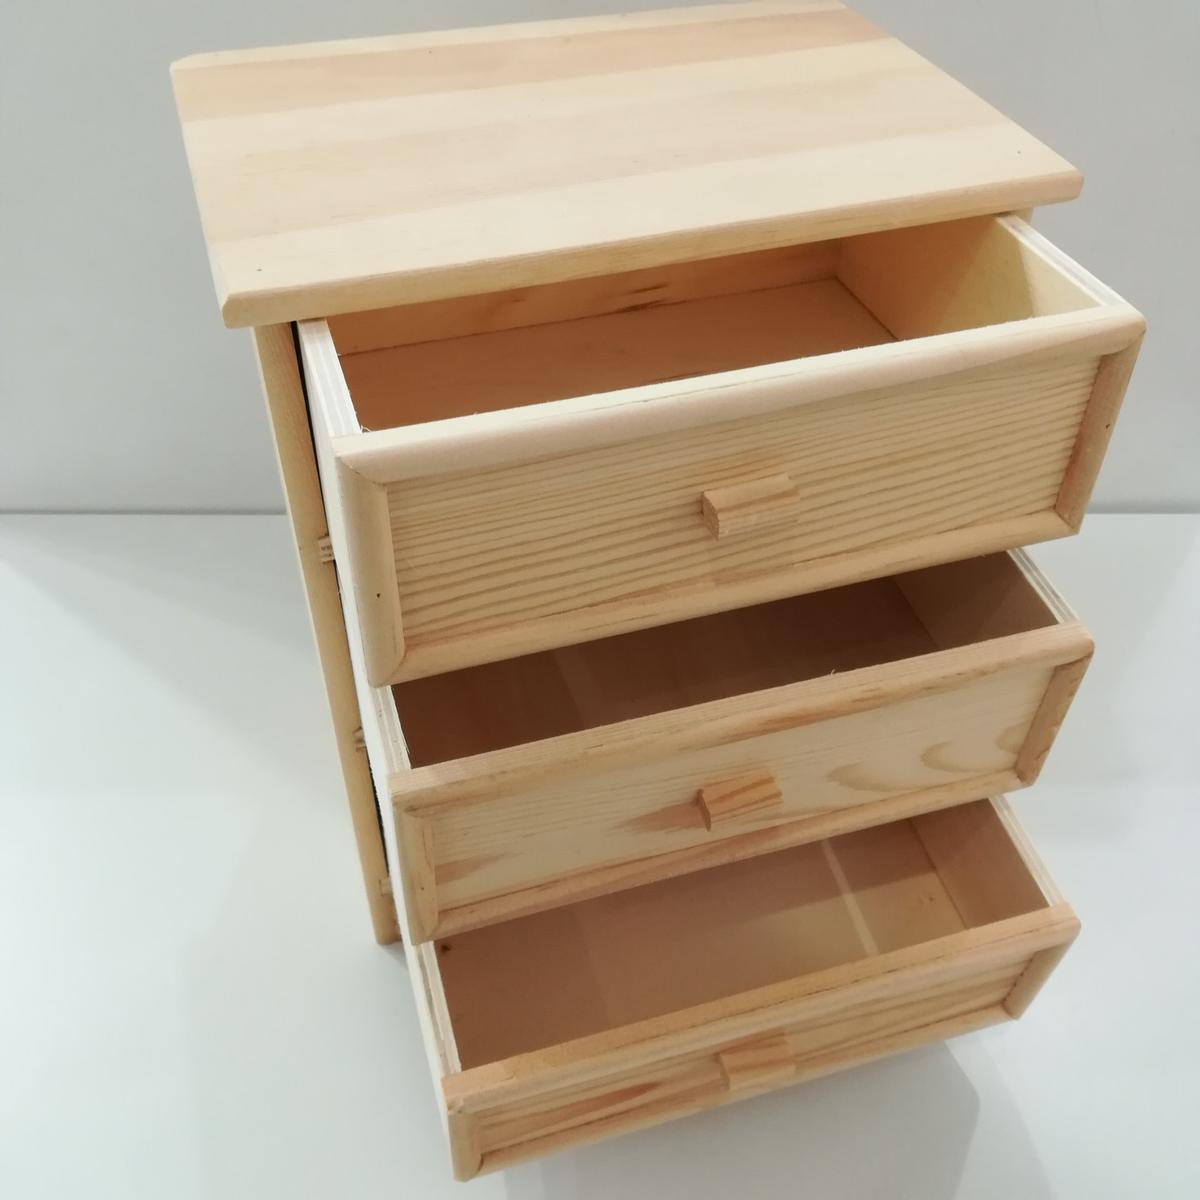 Mini Cassettiera In Legno.Cassettiera In Legno Mini In 52100 Arezzo For 11 00 For Sale Shpock